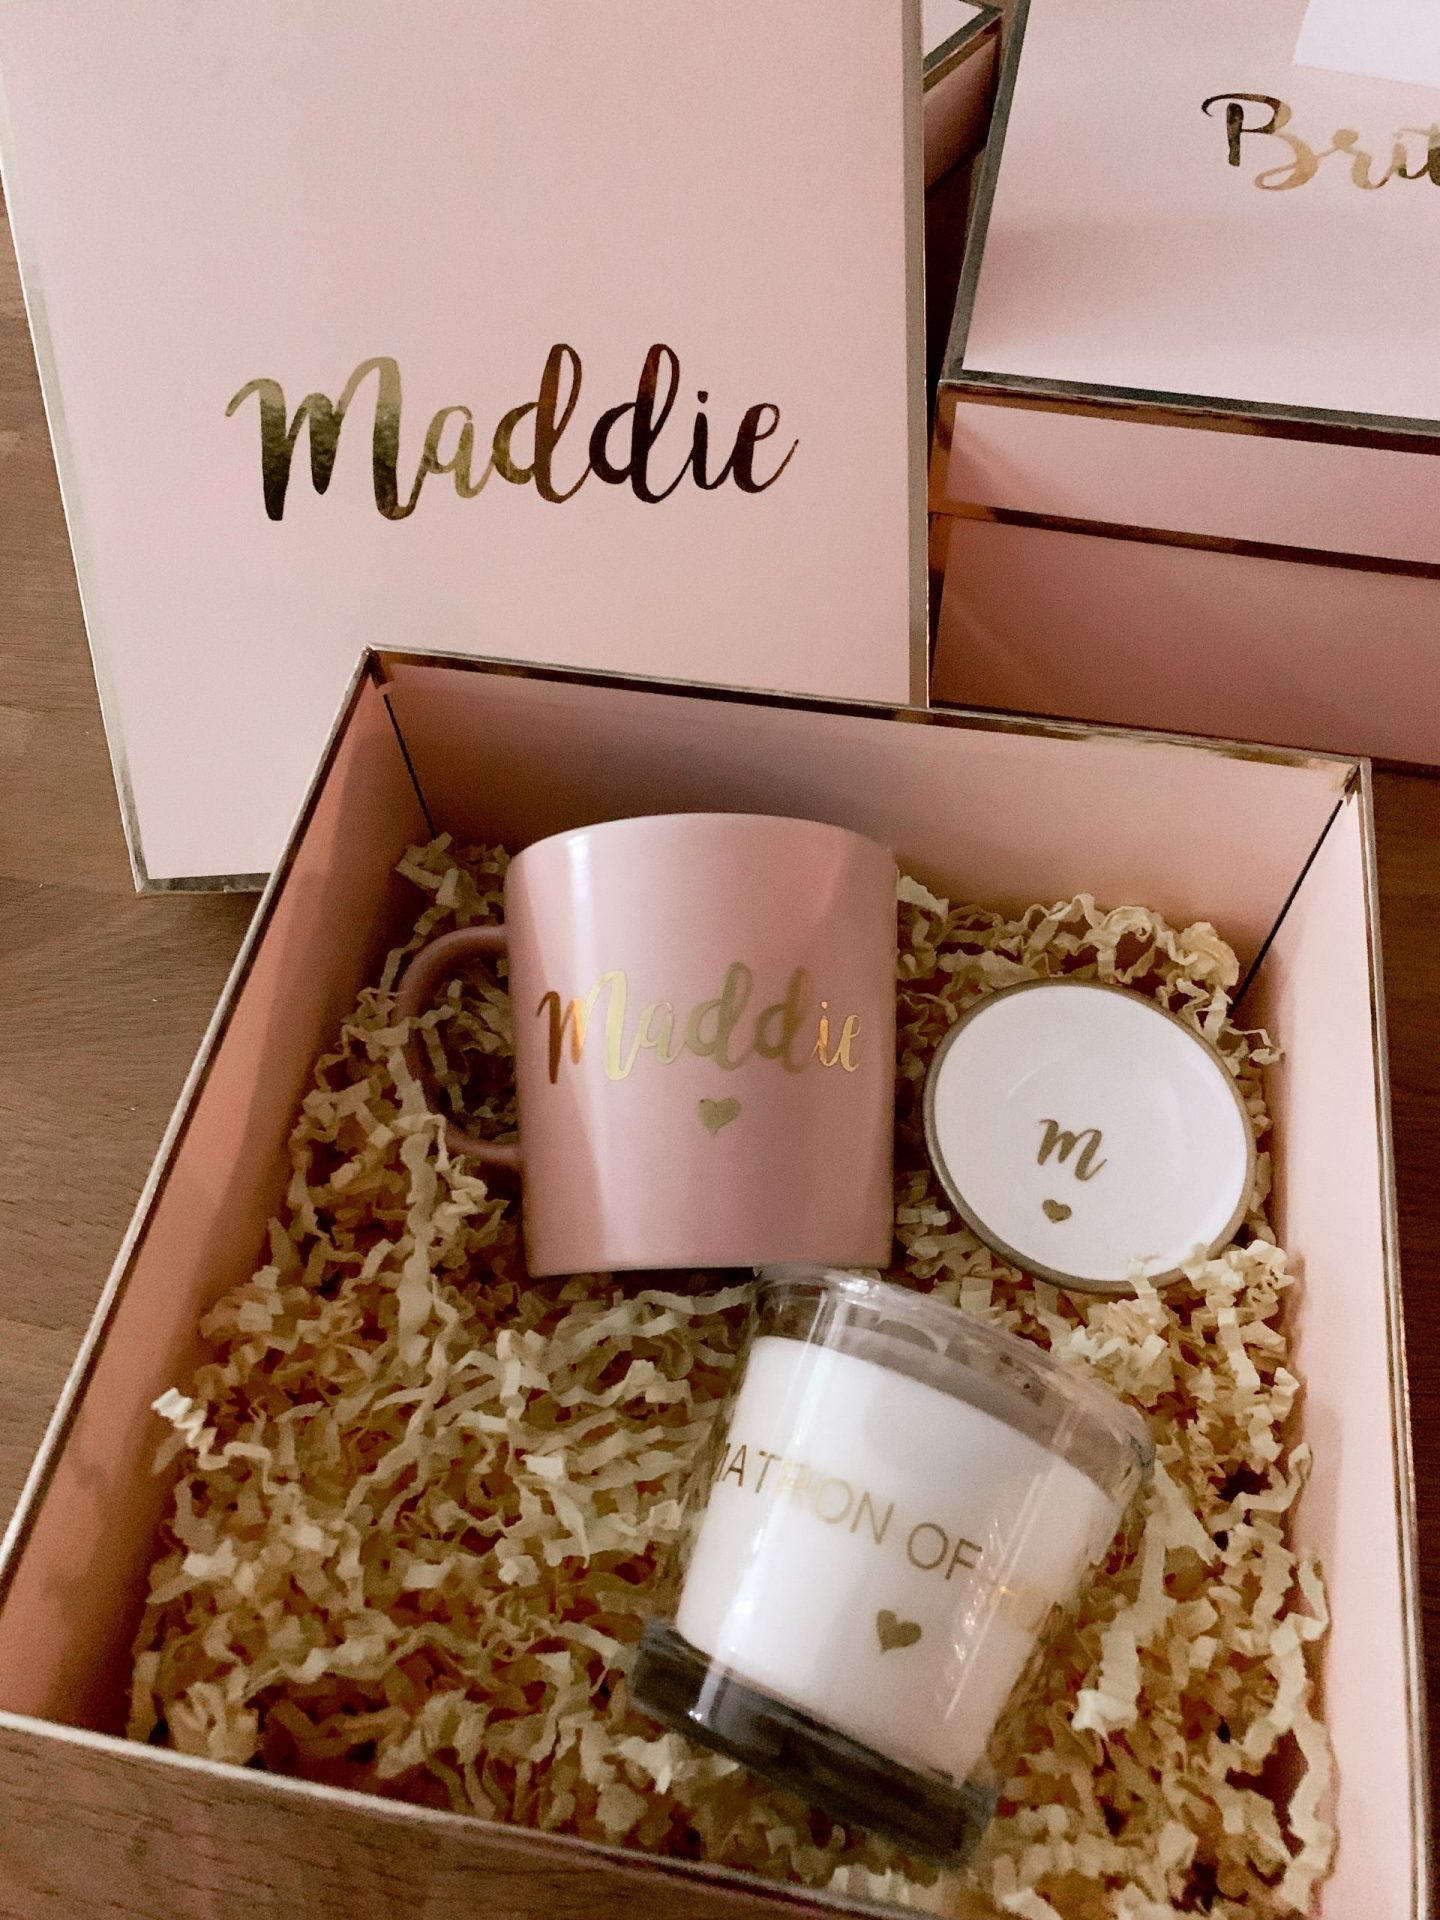 bridesmaid proposal gifts - personalized gift box